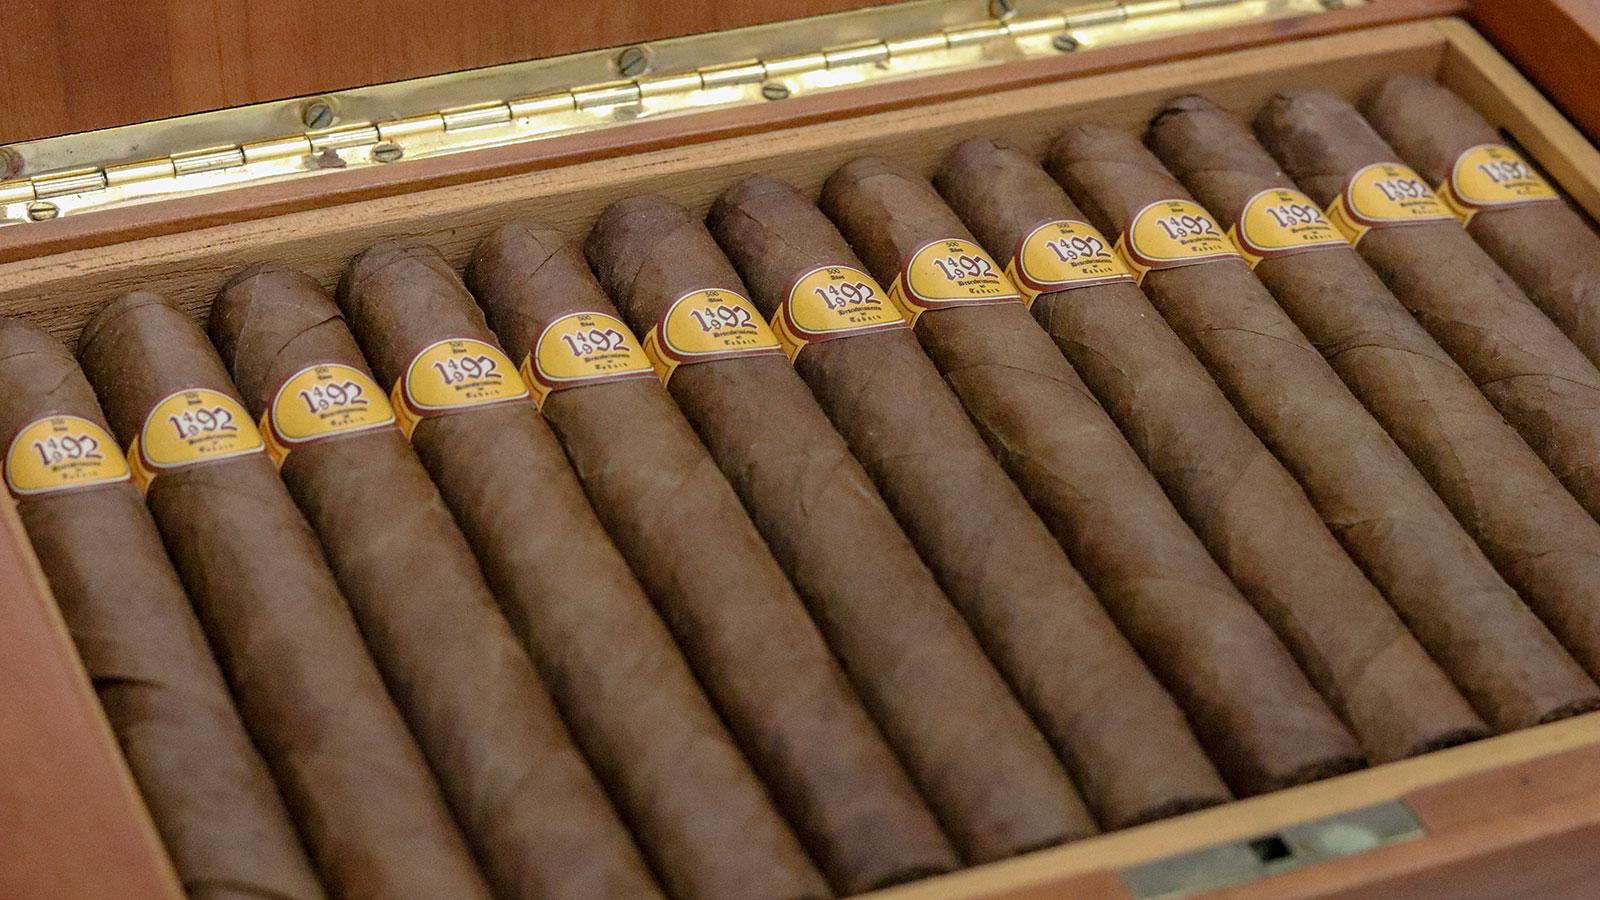 Rare 1492 Cuban Humidor Fetches $31,000 At Auction